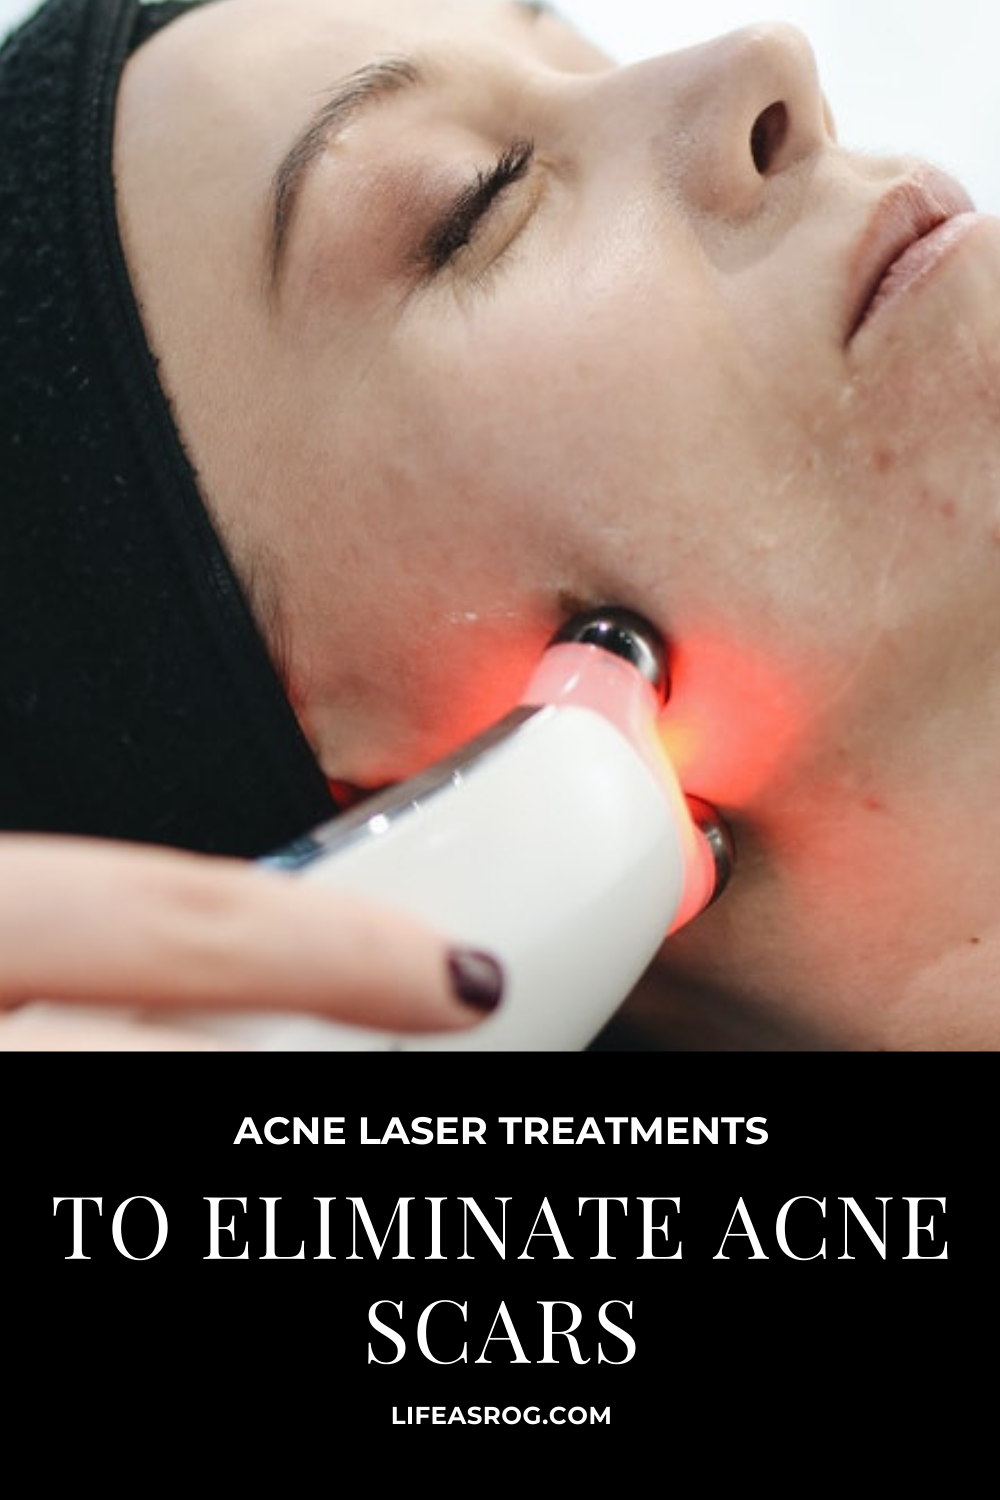 Acne Laser Treatments to Eliminate Acne Scars